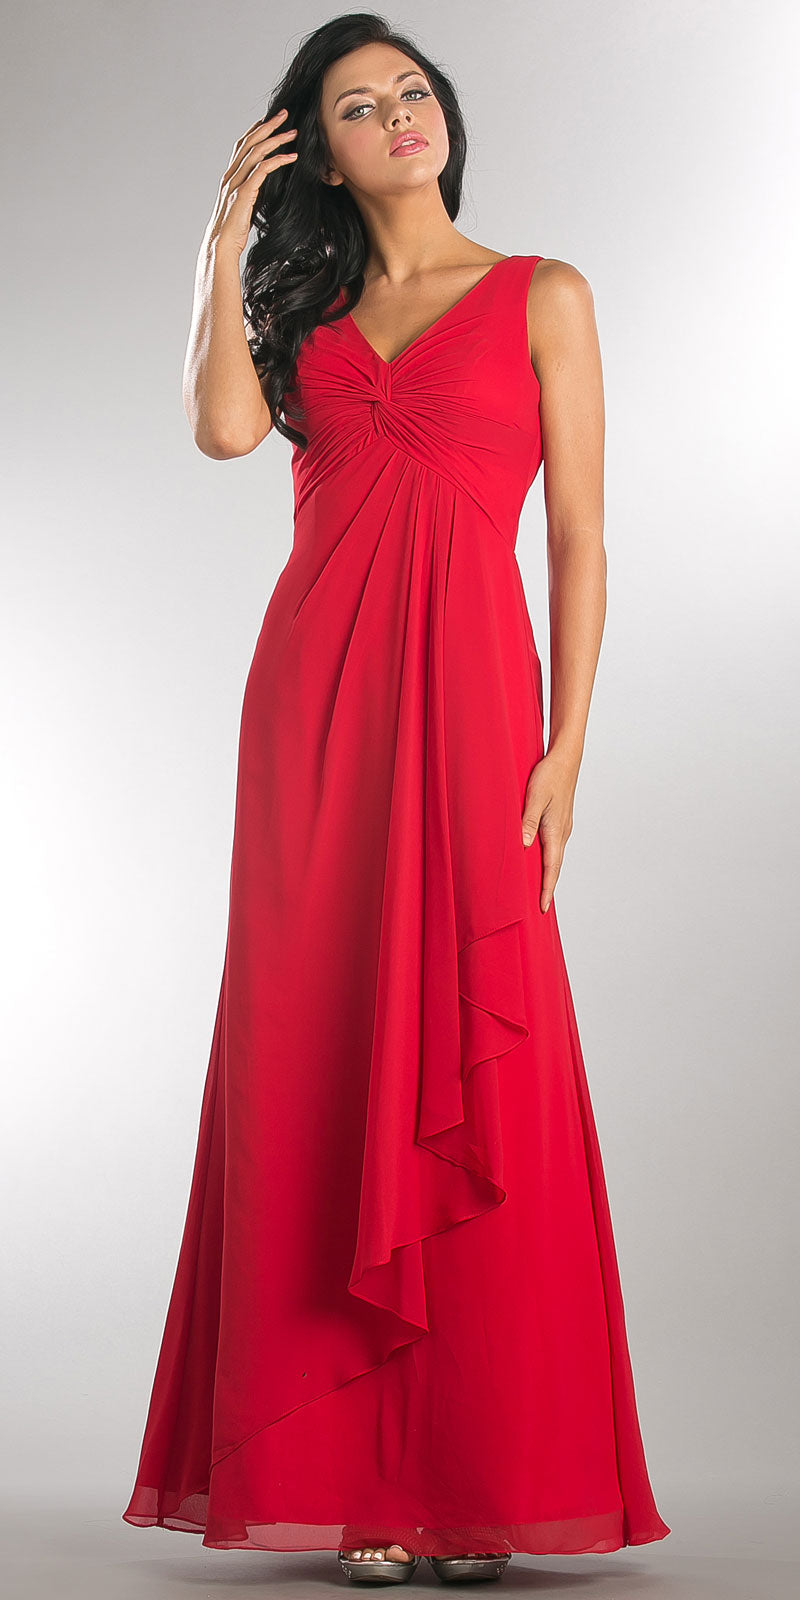 Image of V-neck Ruched Twist Knot Bust Long Bridesmaid Dress in Red